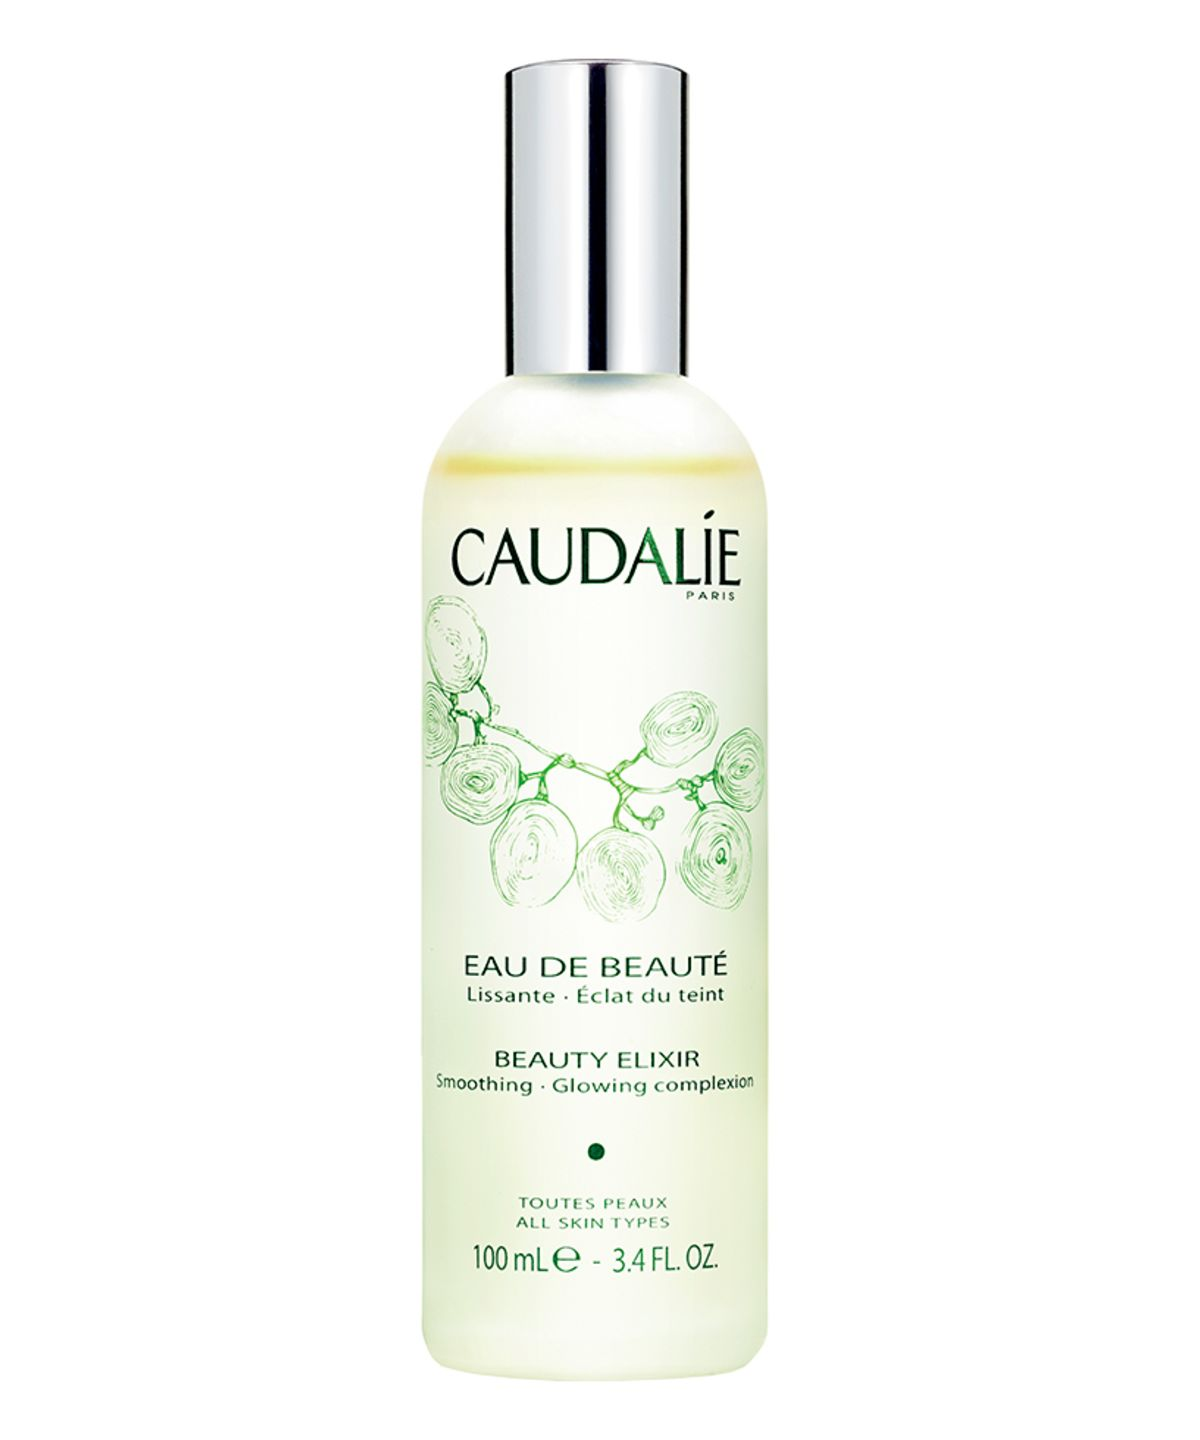 french pharmacy products online Caudalie - Beauty Elixir